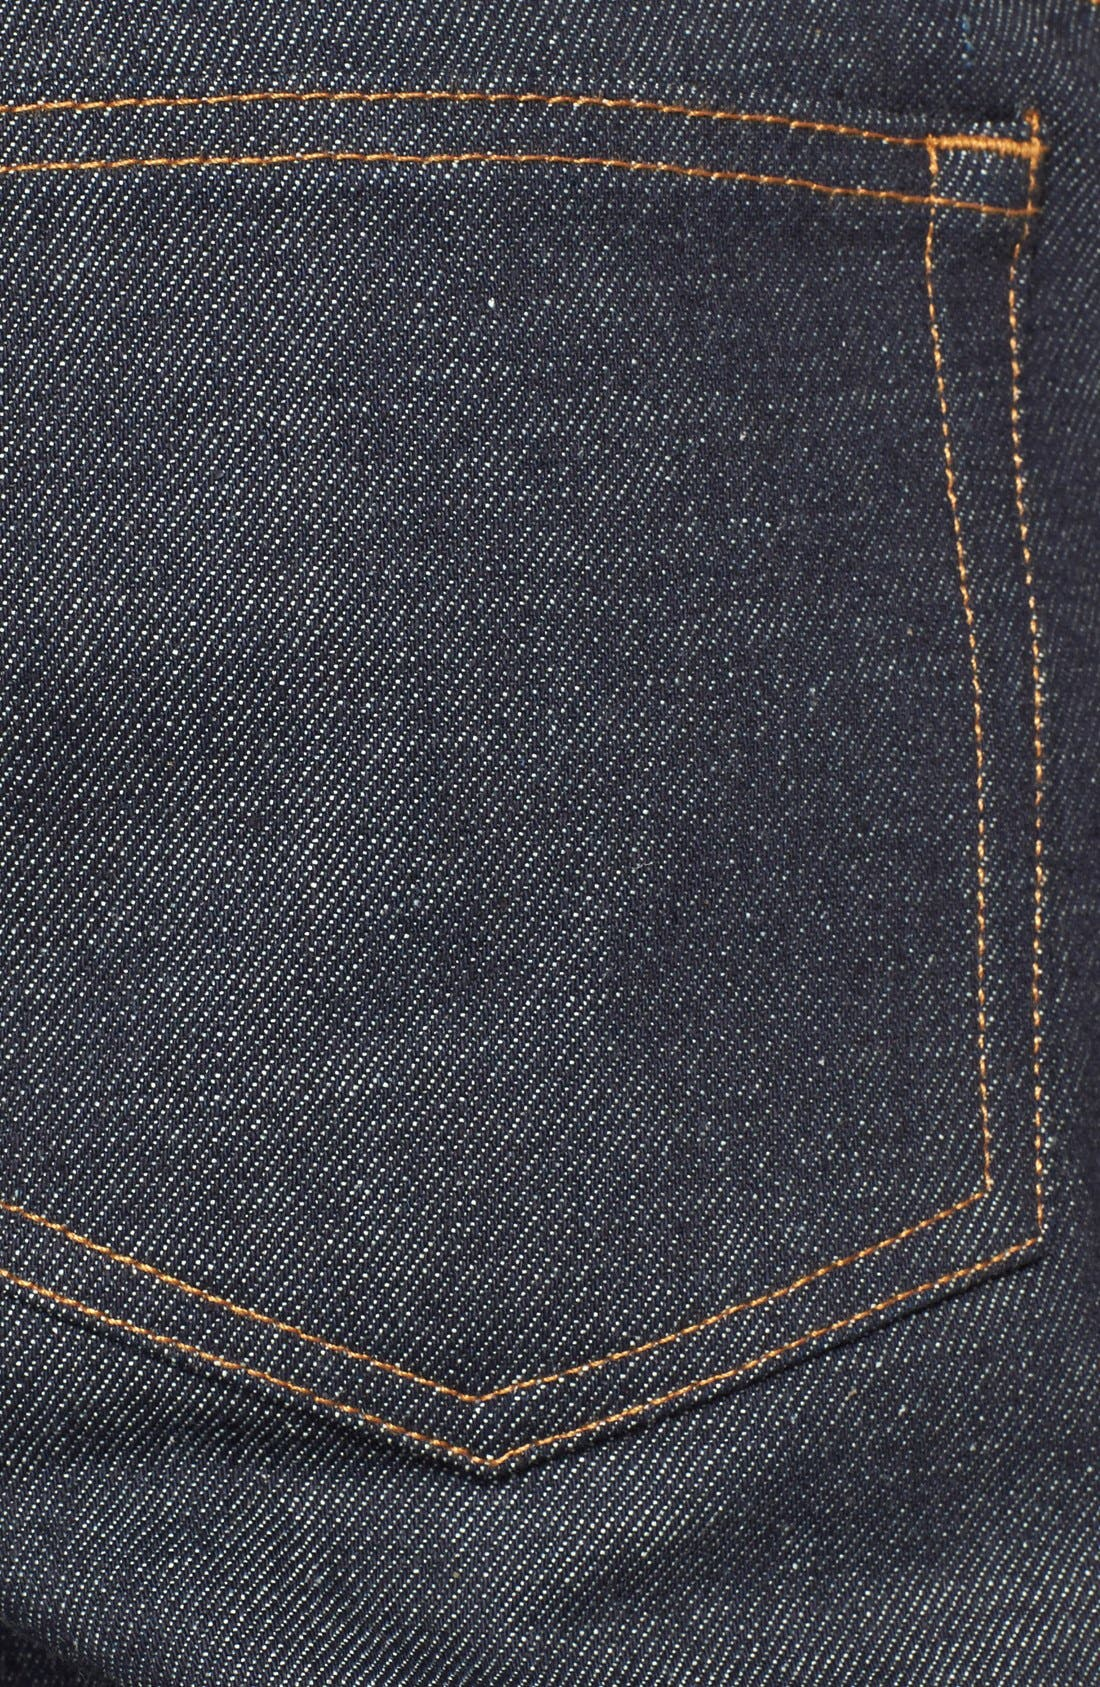 Petit New Standard Skinny Fit Selvedge Jeans,                             Alternate thumbnail 3, color,                             INDIGO WASH